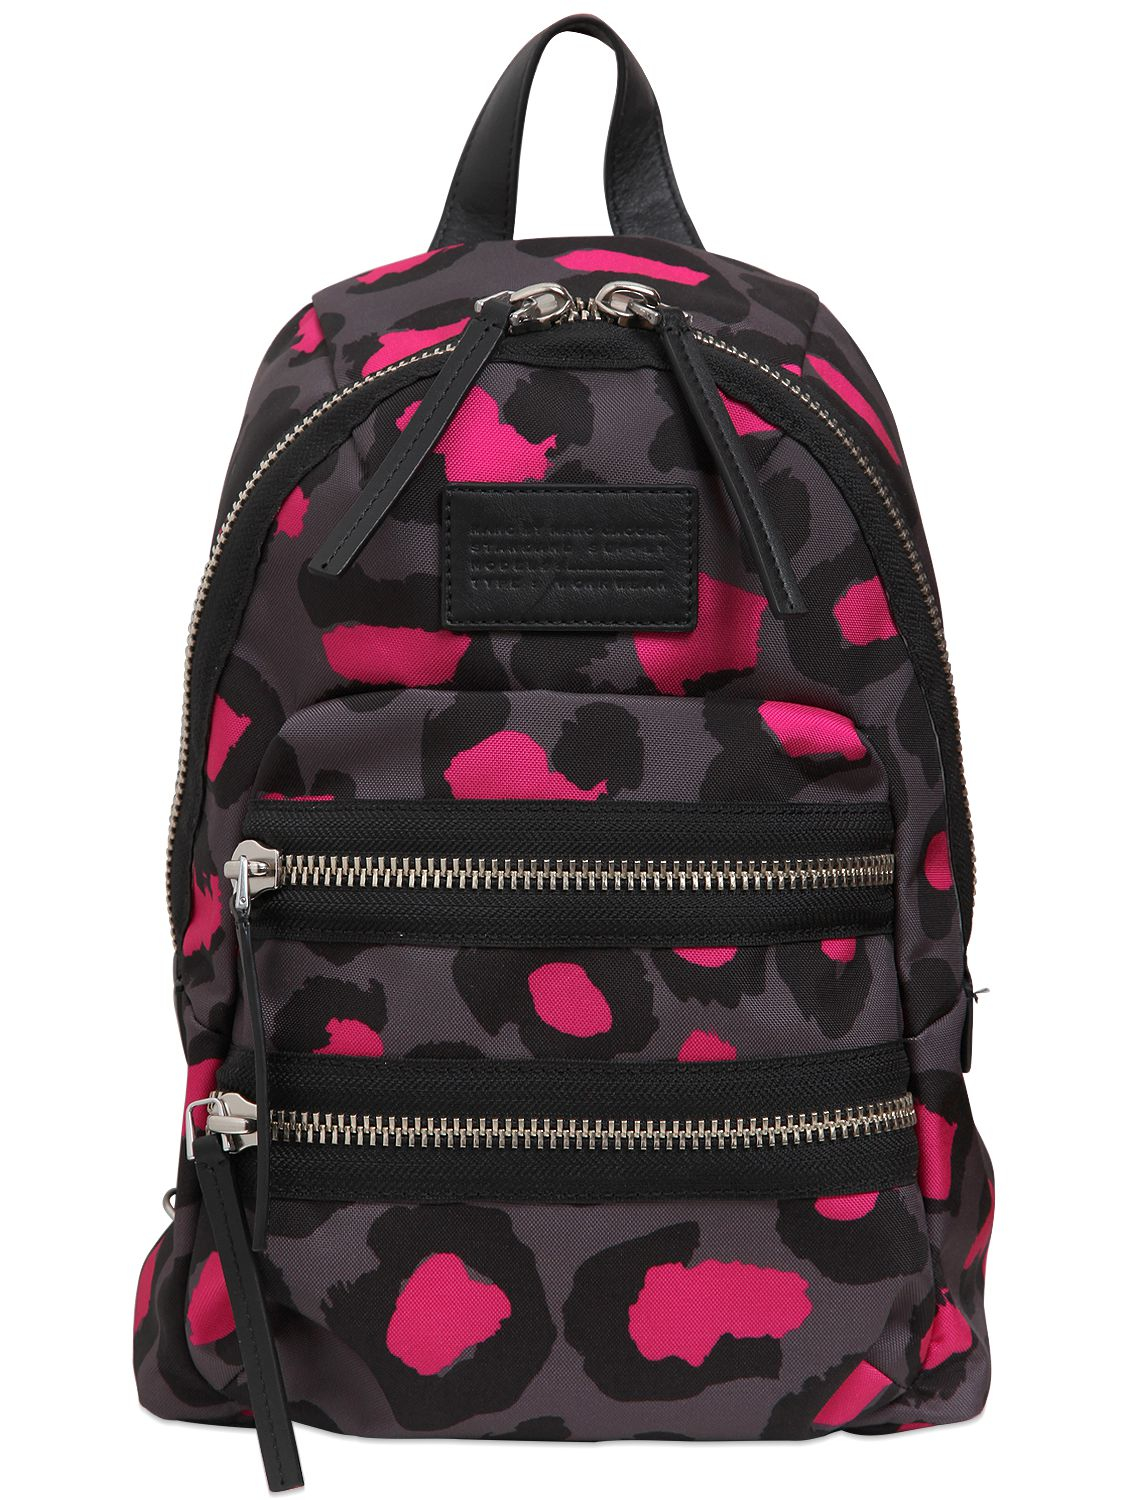 marc by marc jacobs mini packrat leopard printed backpack in pink fuchsia grey lyst. Black Bedroom Furniture Sets. Home Design Ideas